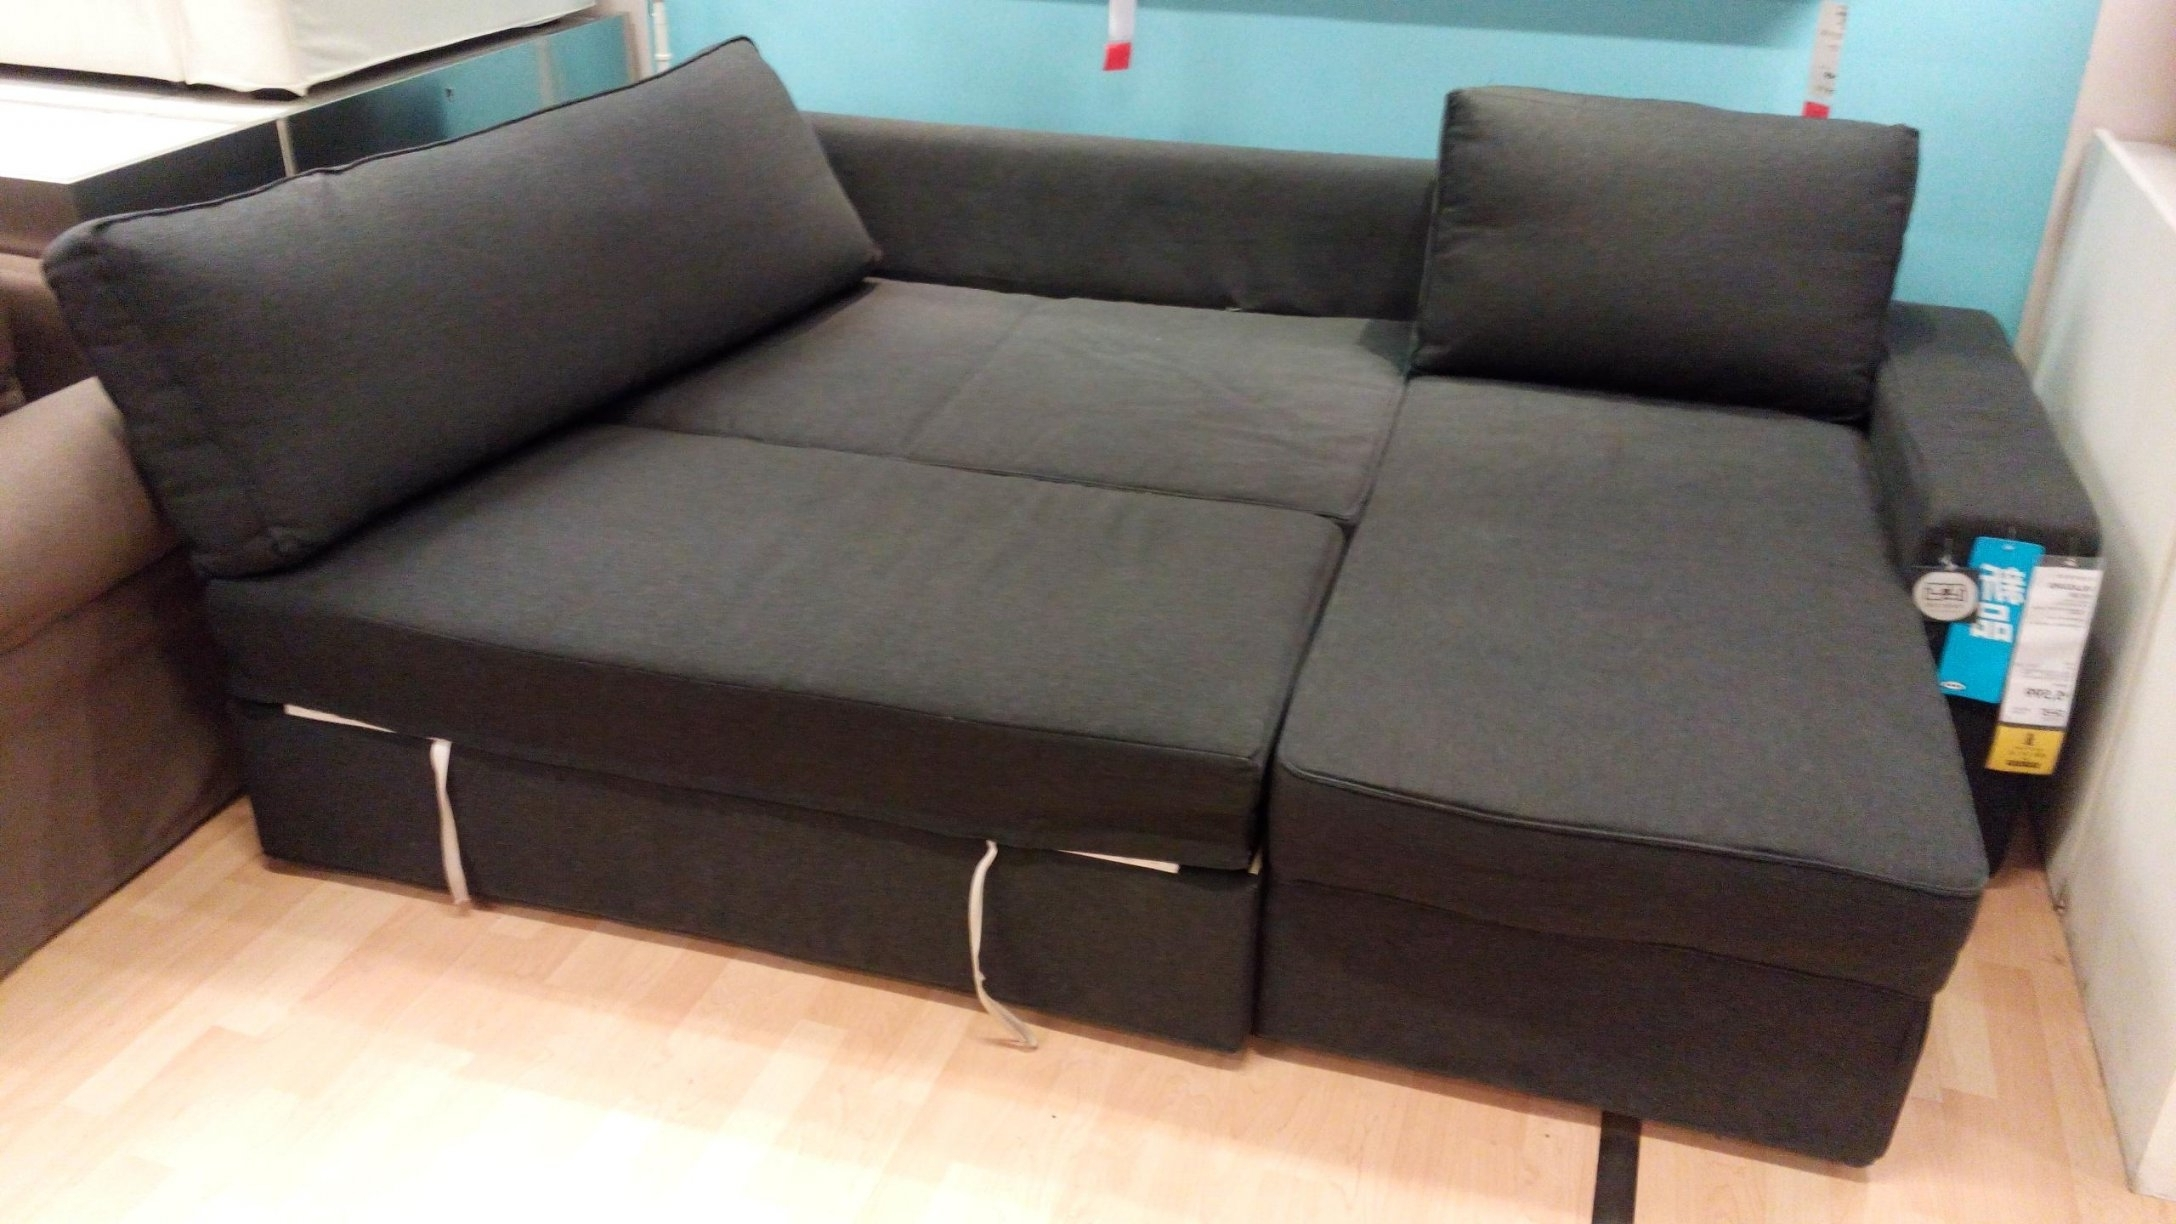 Sofa Ideas Intended For Intended For Most Recent Chaise Beds (View 12 of 15)